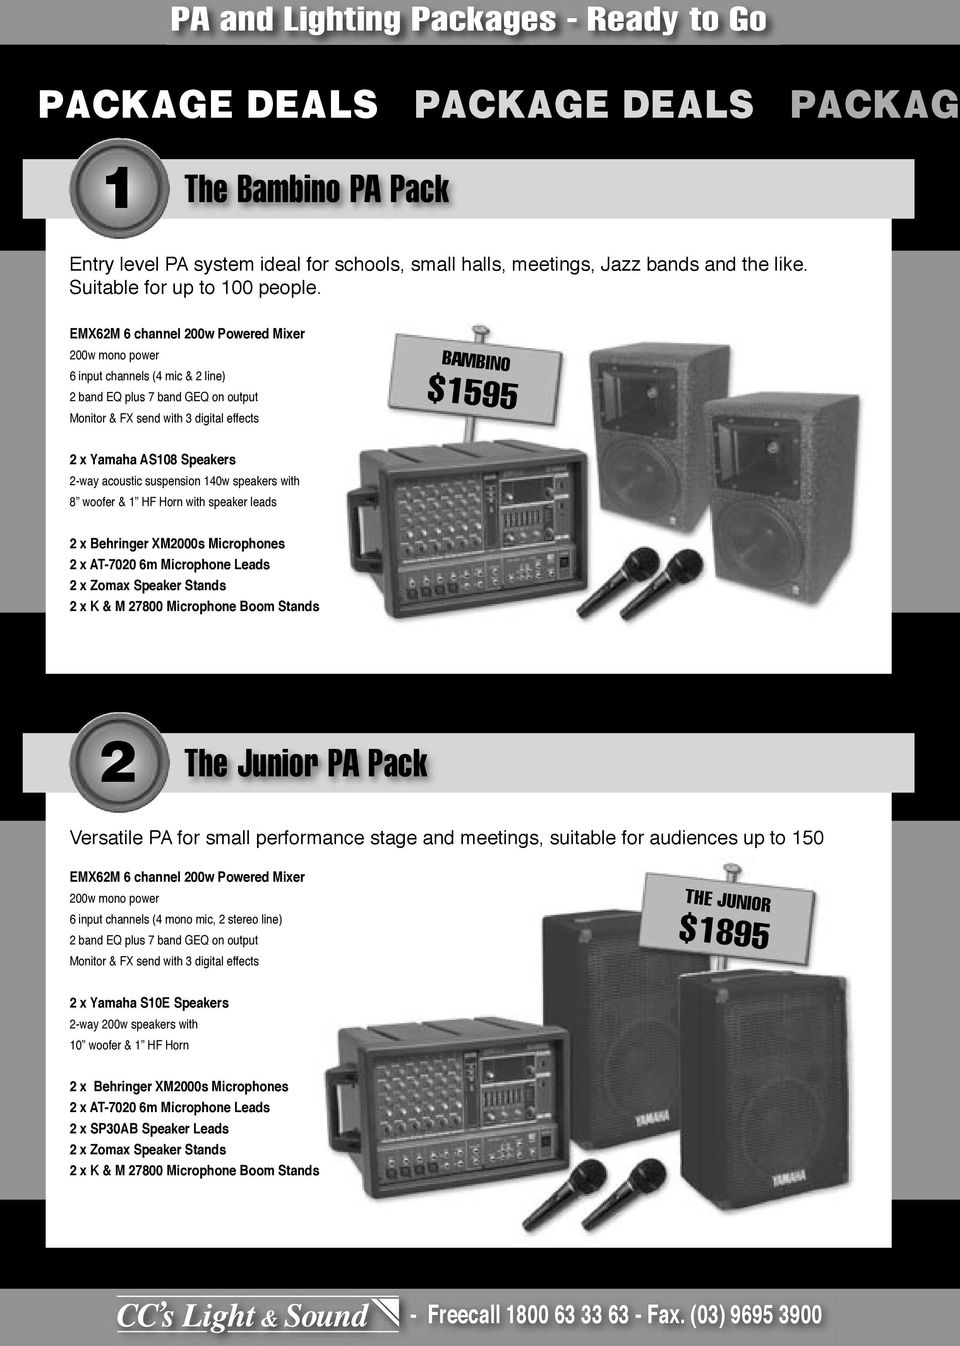 Speakers 2-way acoustic suspension 140w speakers with 8 woofer & 1 HF Horn with speaker leads 2 x Behringer XM2000s Microphones 2 x AT-7020 6m Microphone Leads 2 The Junior PA Pack Versatile PA for